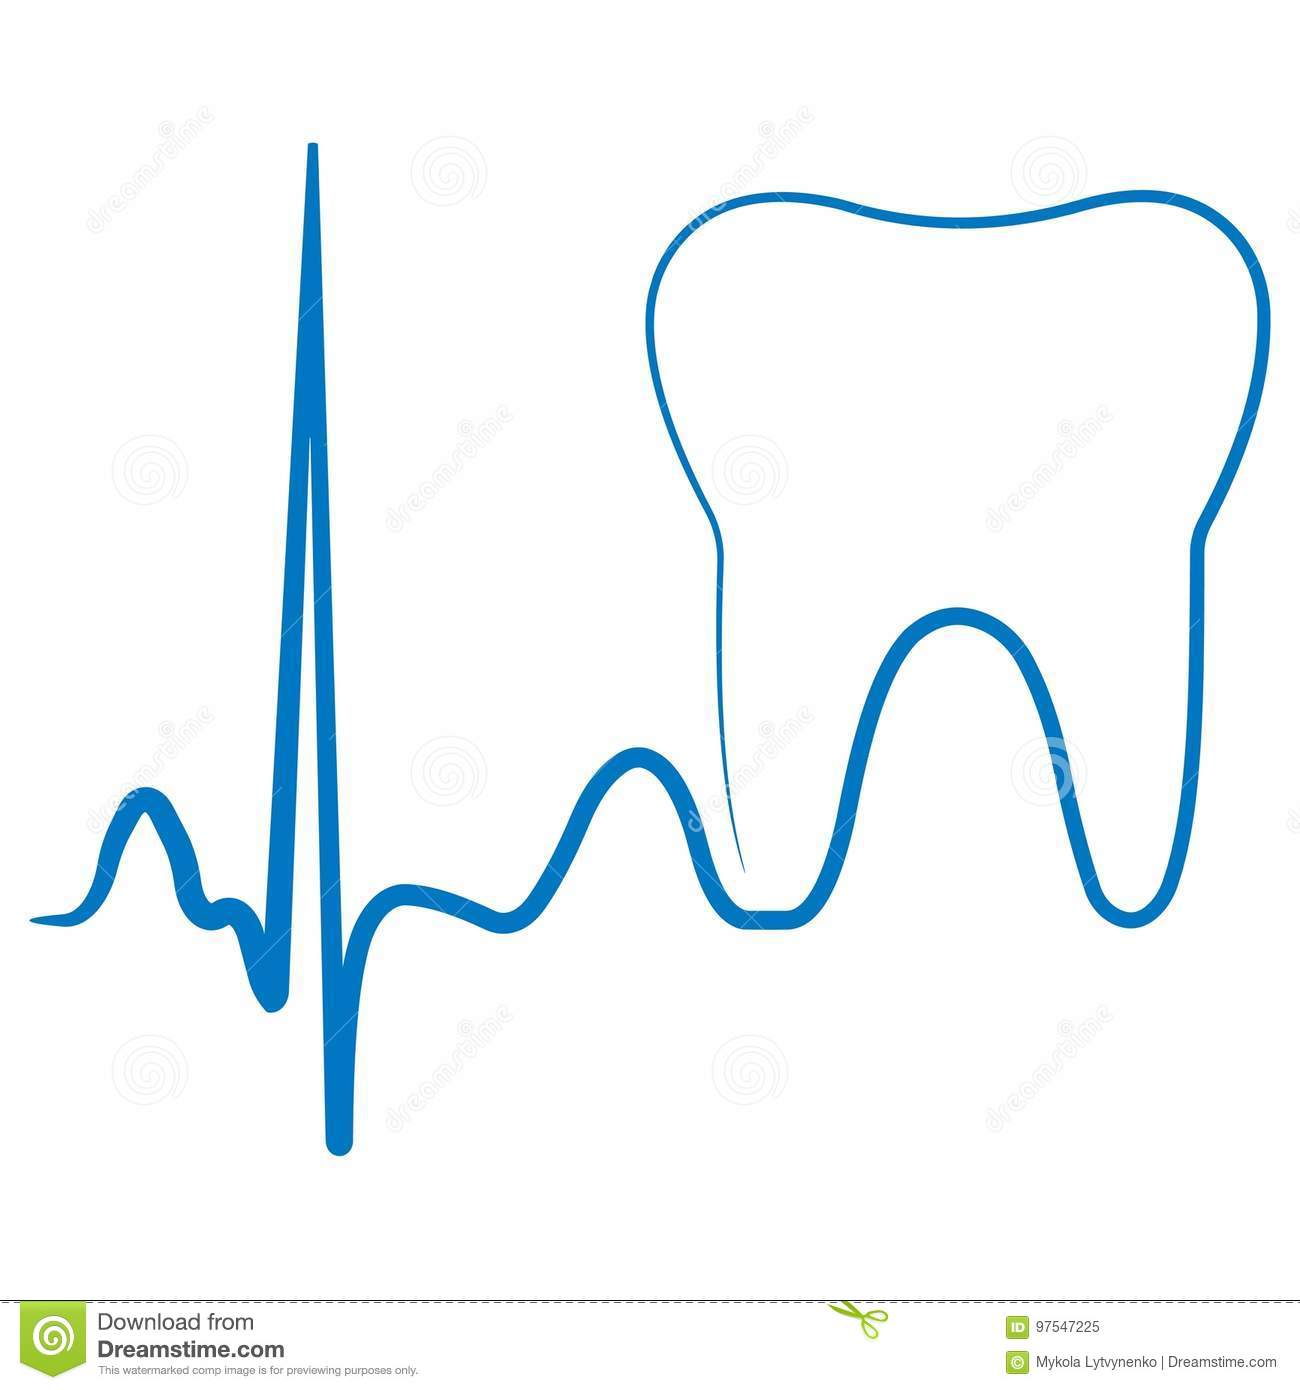 Logo For The Dental Clinic Office The Impulse Turning Into A Tooth Molar Stock Illustration Illustration Of Blue Clean 97547225